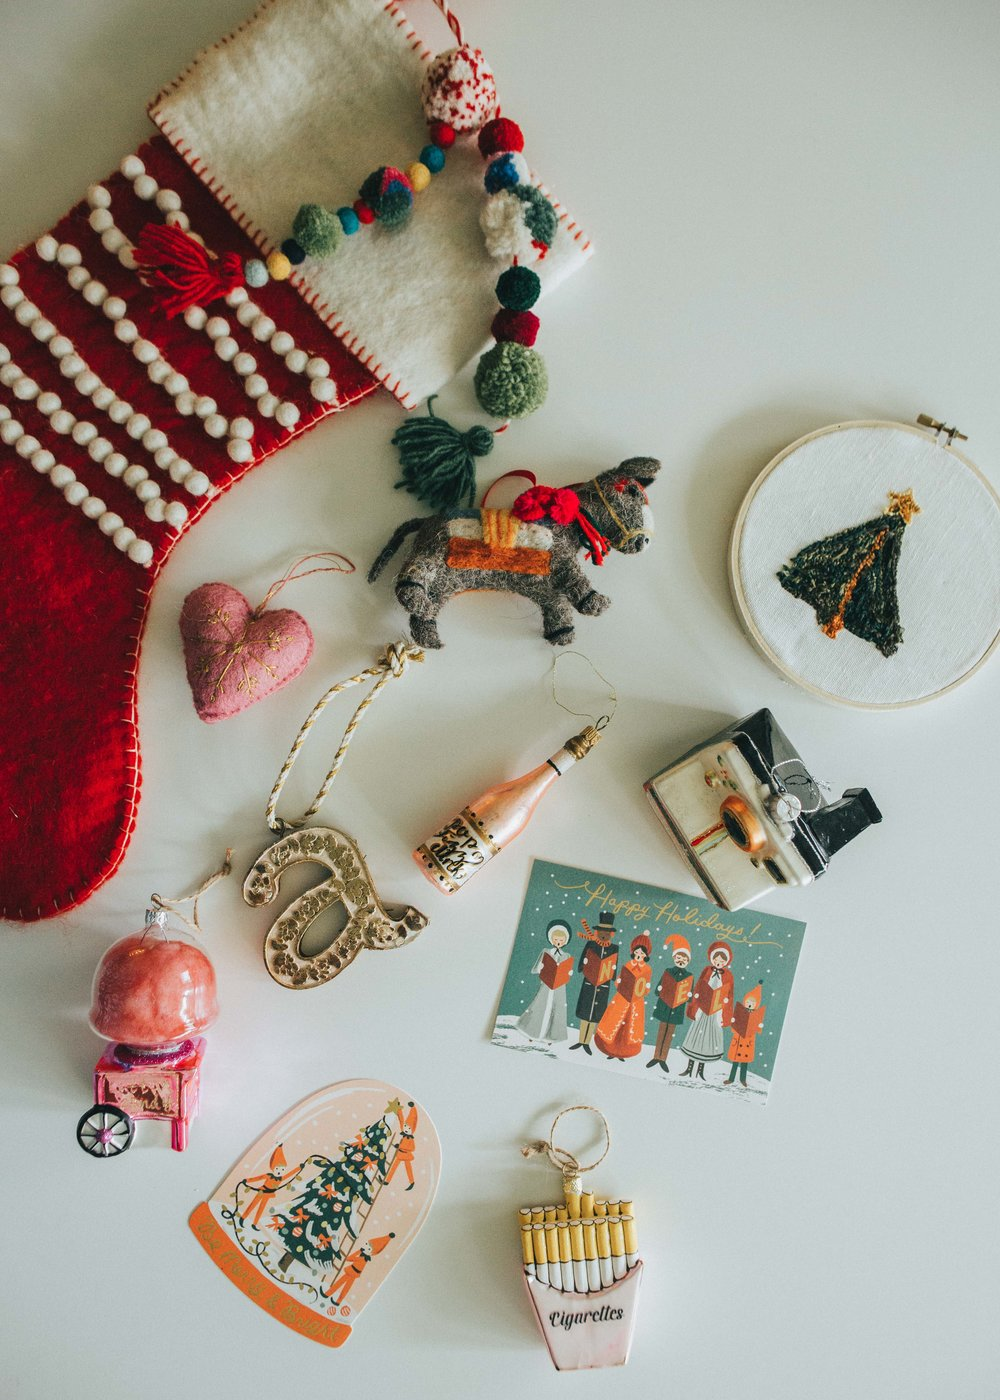 Some of MY favorite ornaments, hello again! :)